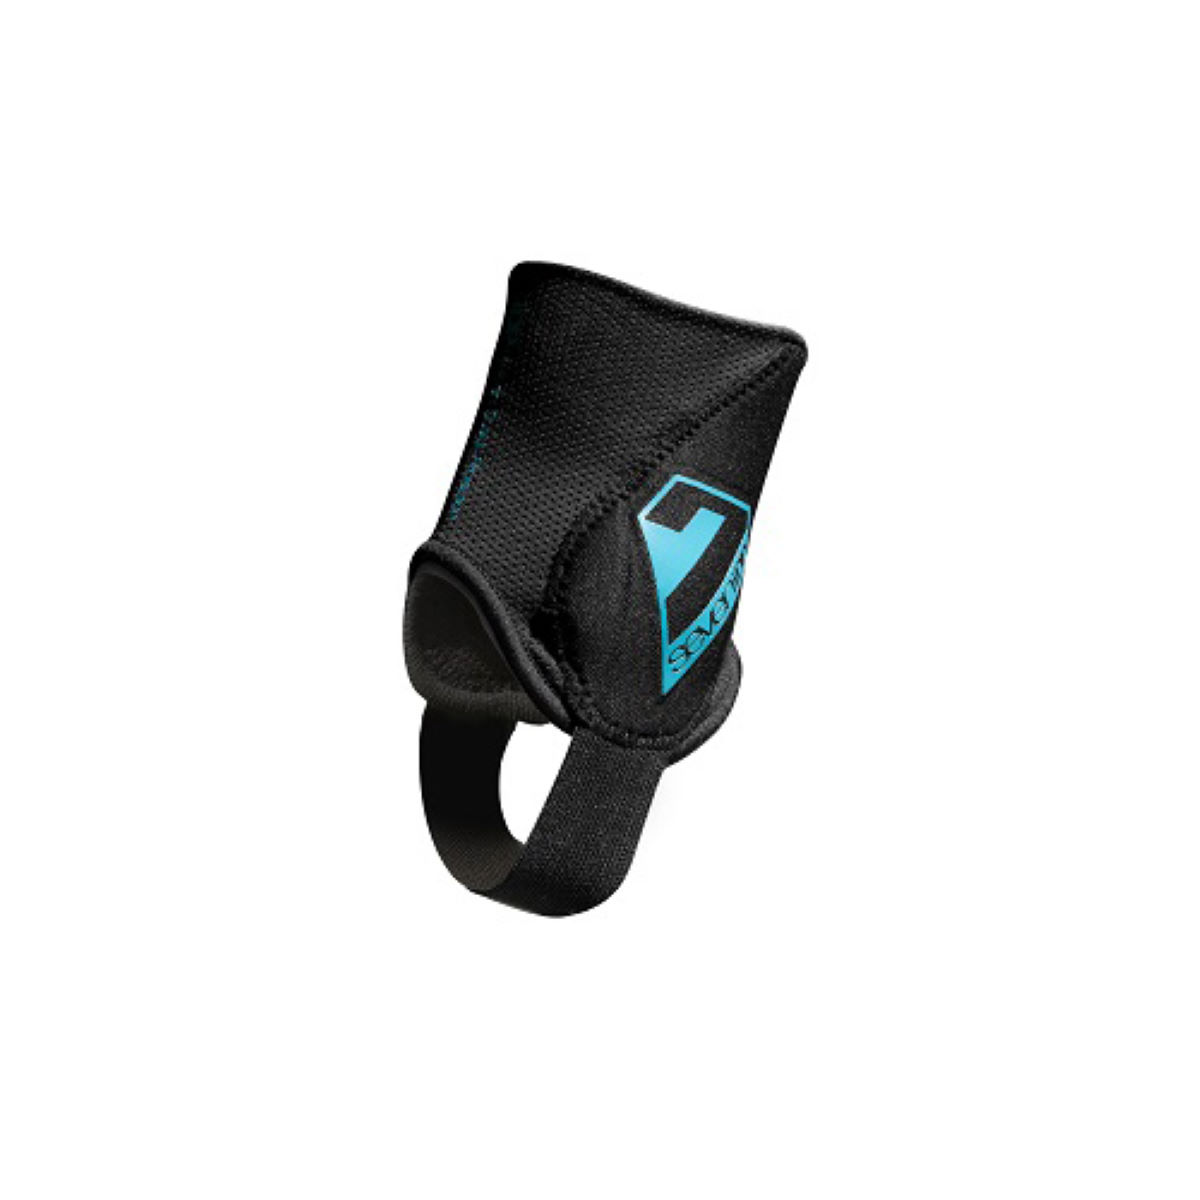 7 iDP 7 iDP Control Ankle Guard   Ankle Pads